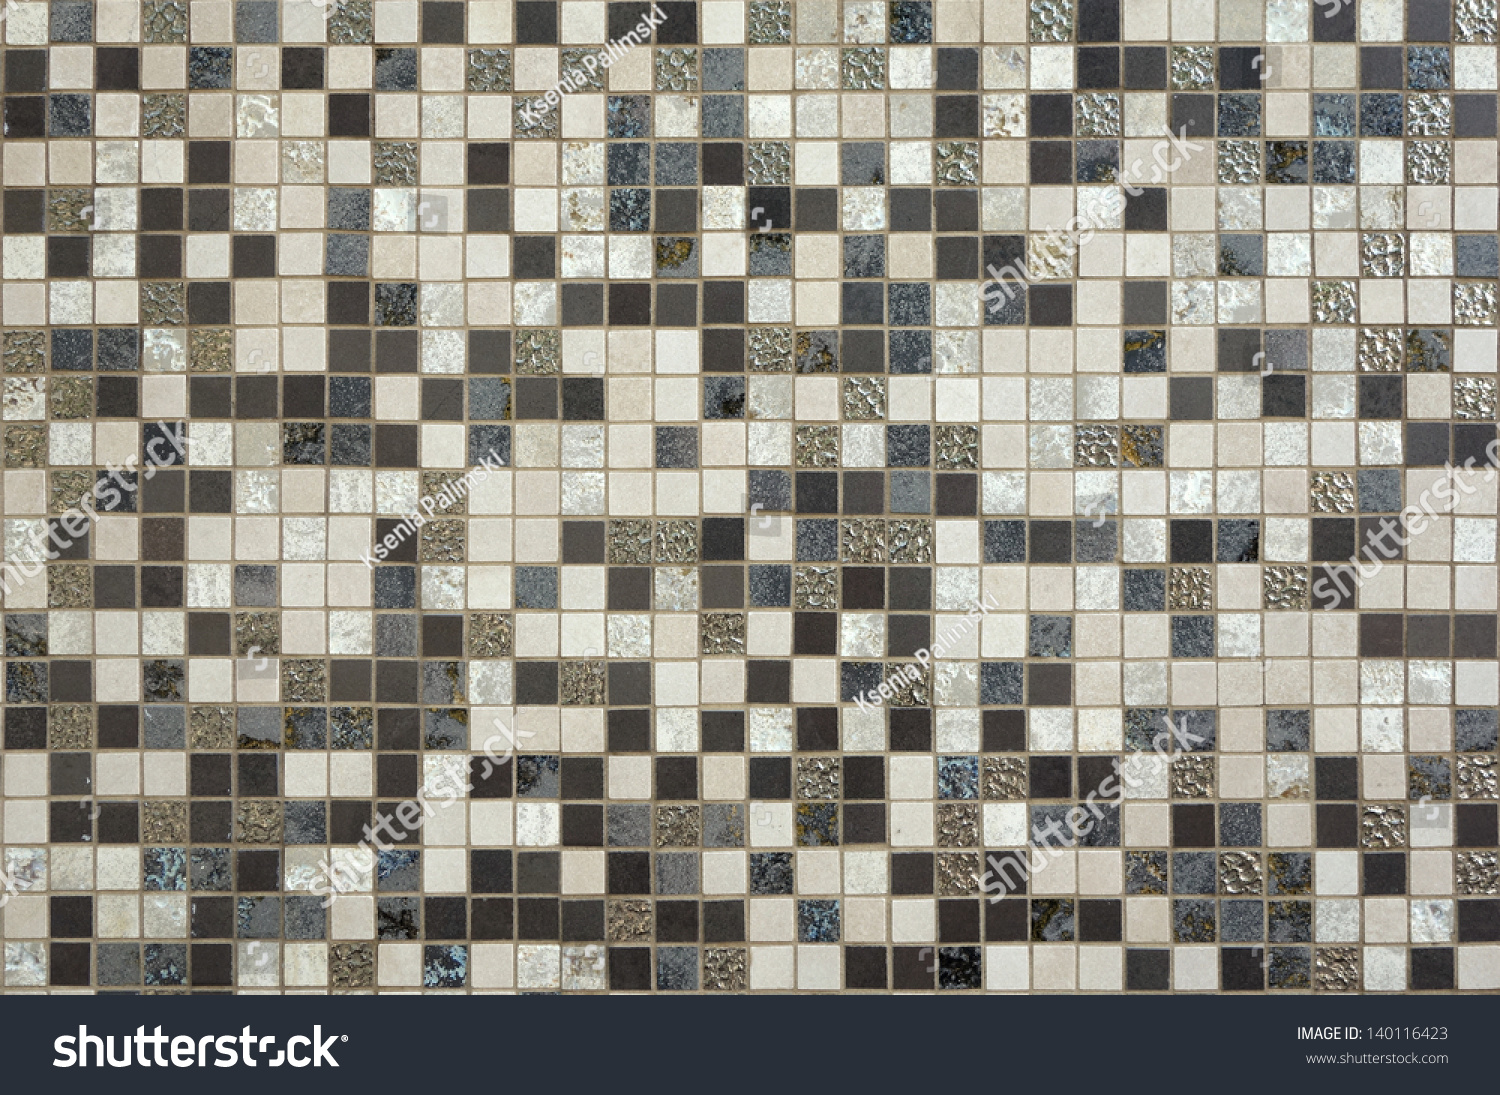 Tiles and Mosaics textures free download page 4  cadnavcom